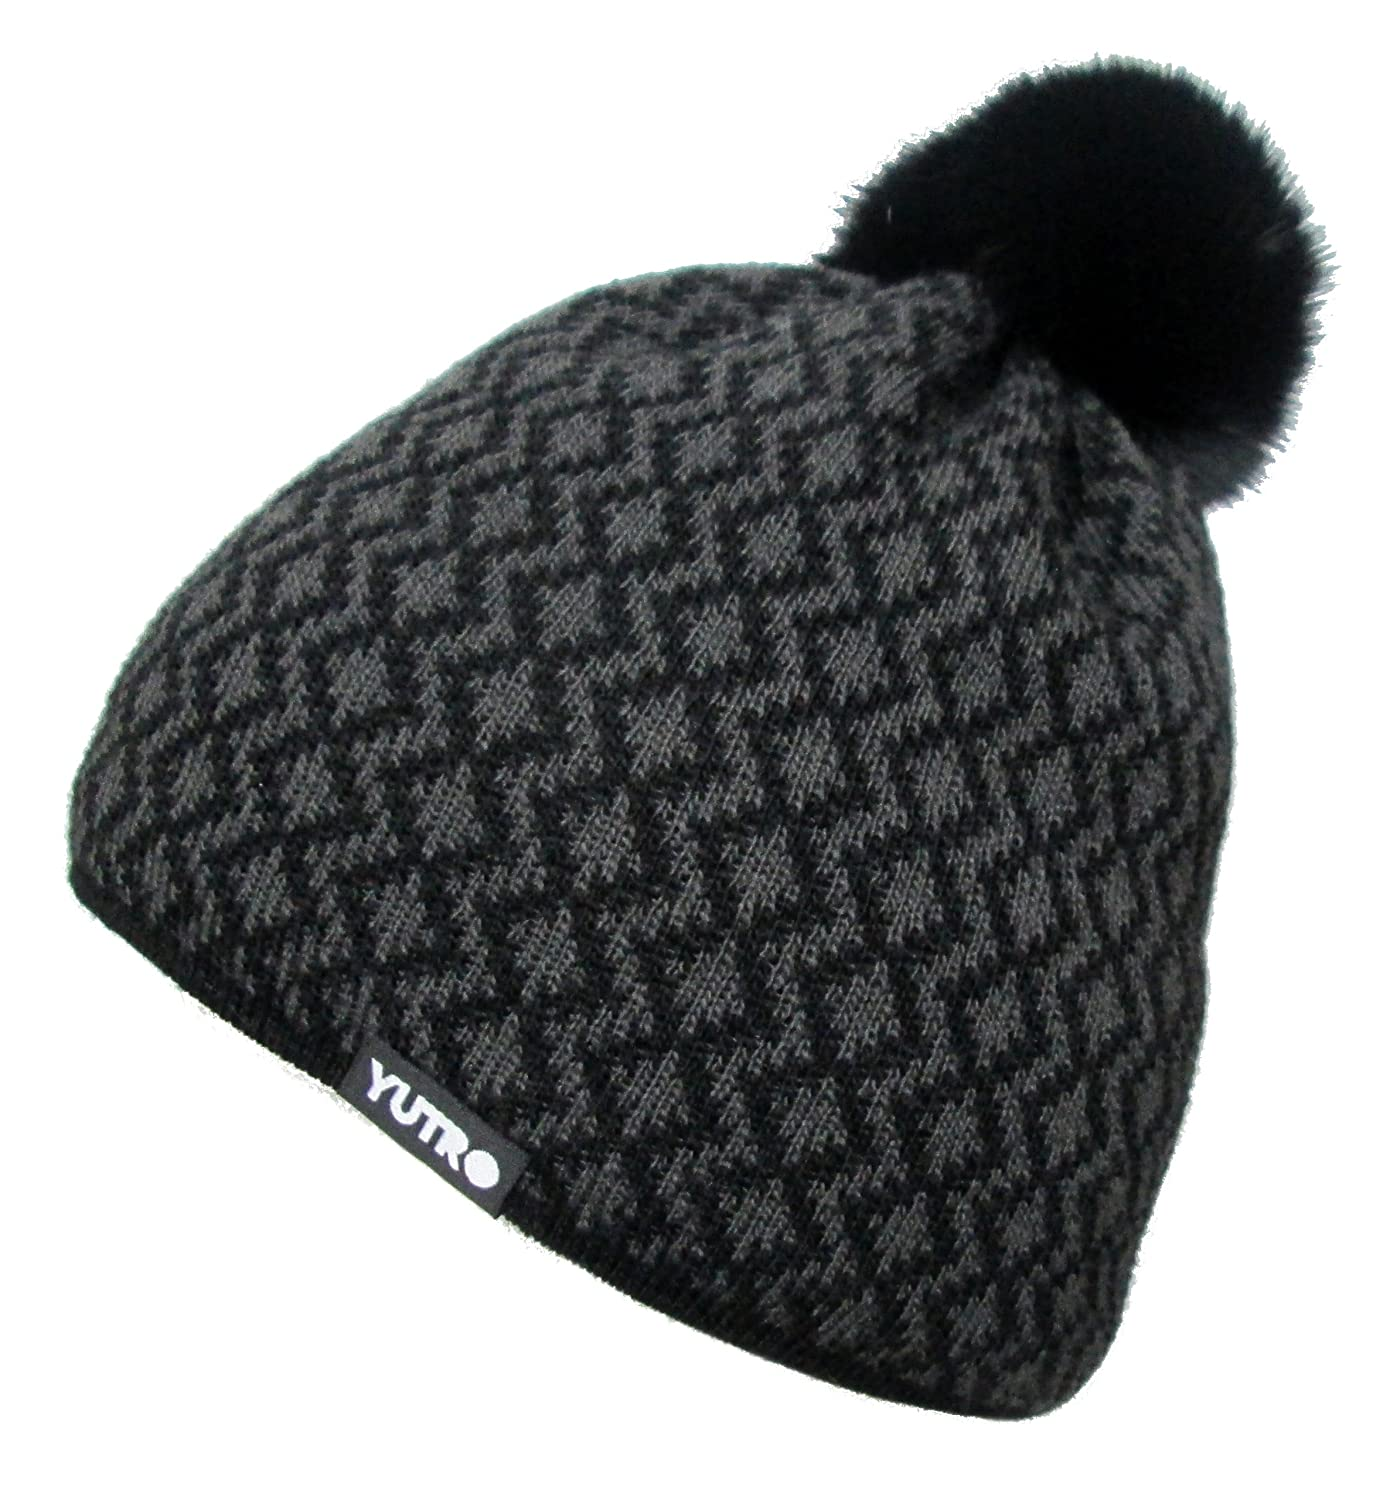 Amazon.com  YUTRO Fashion Wool Thinsulate Fleece Lined Winter Beanie Hat  with Rabbit Pom Black Grey  Clothing d6dbac6e22d9